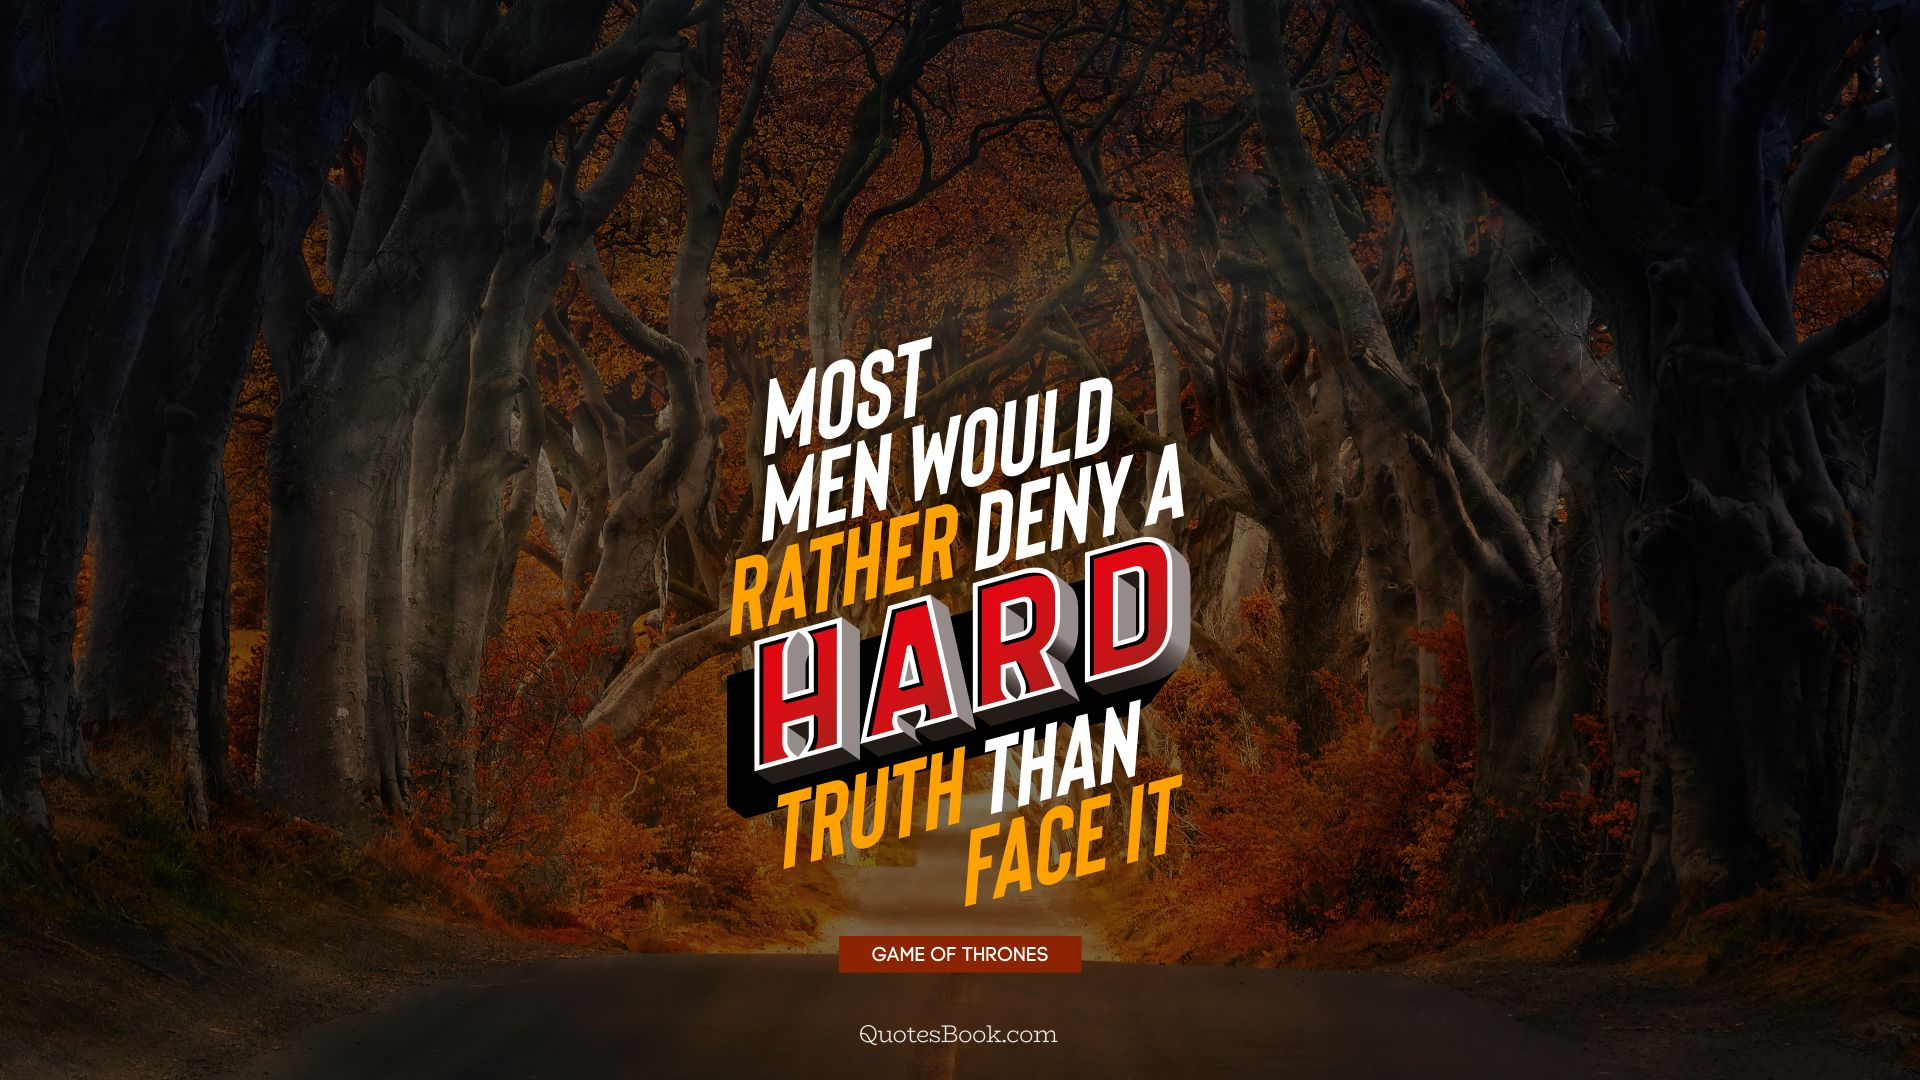 Most men would rather deny a hard truth than face it. - Quote by George R.R. Martin